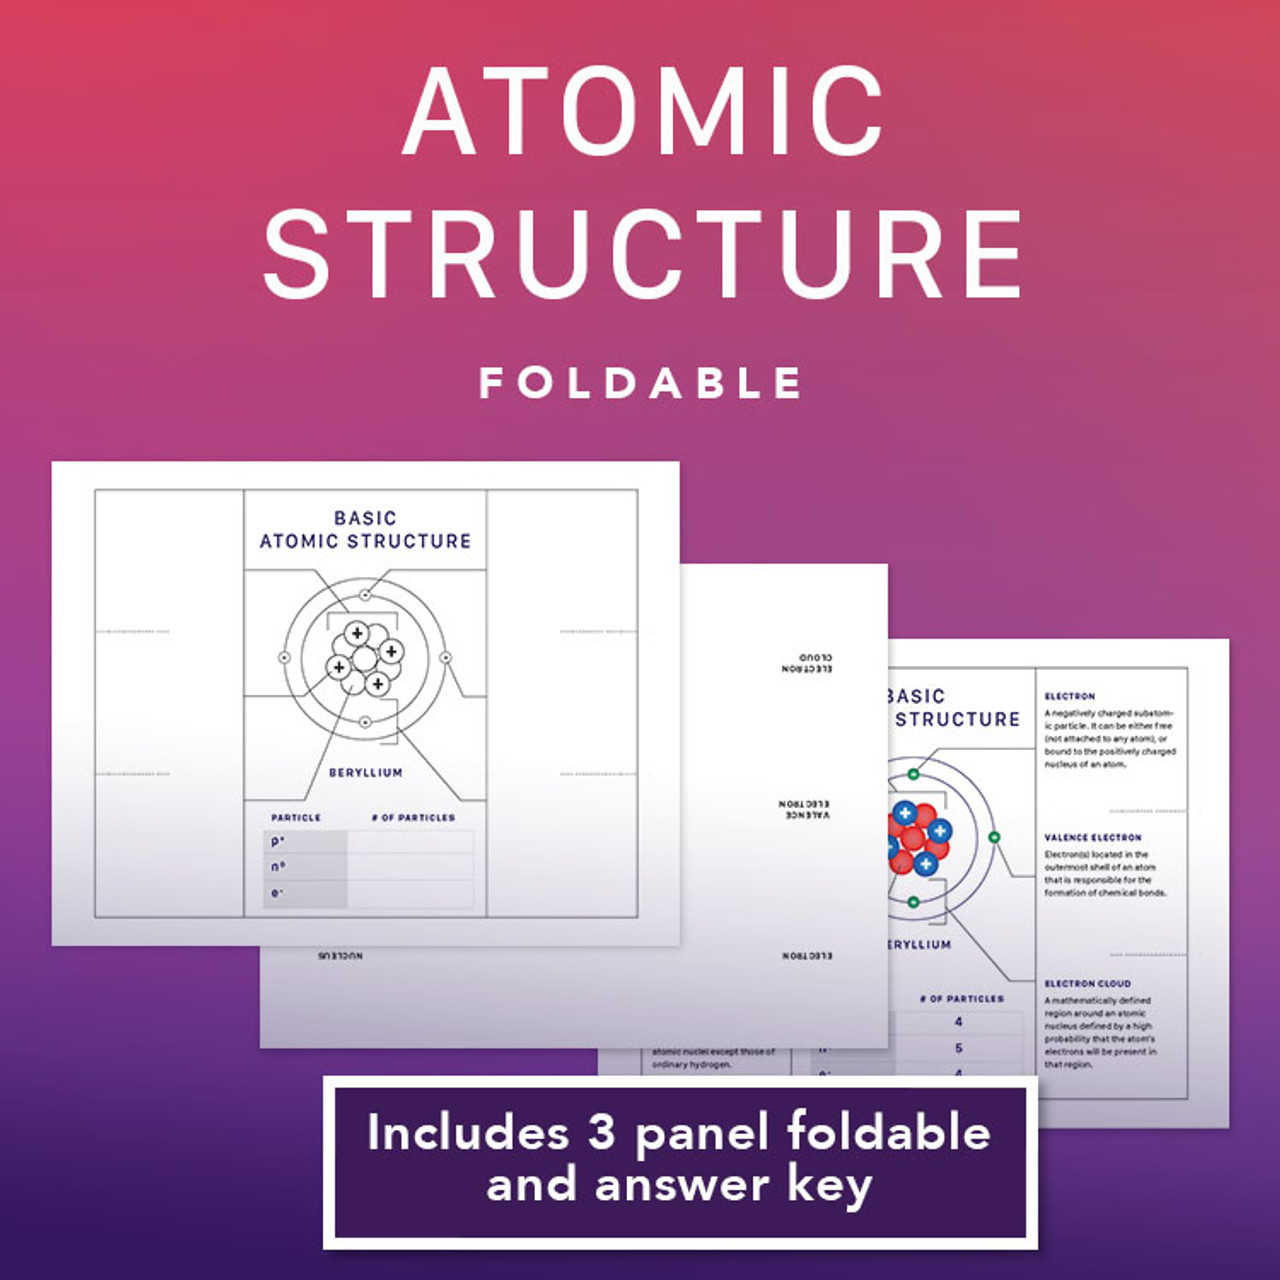 Atomic Structure Foldable